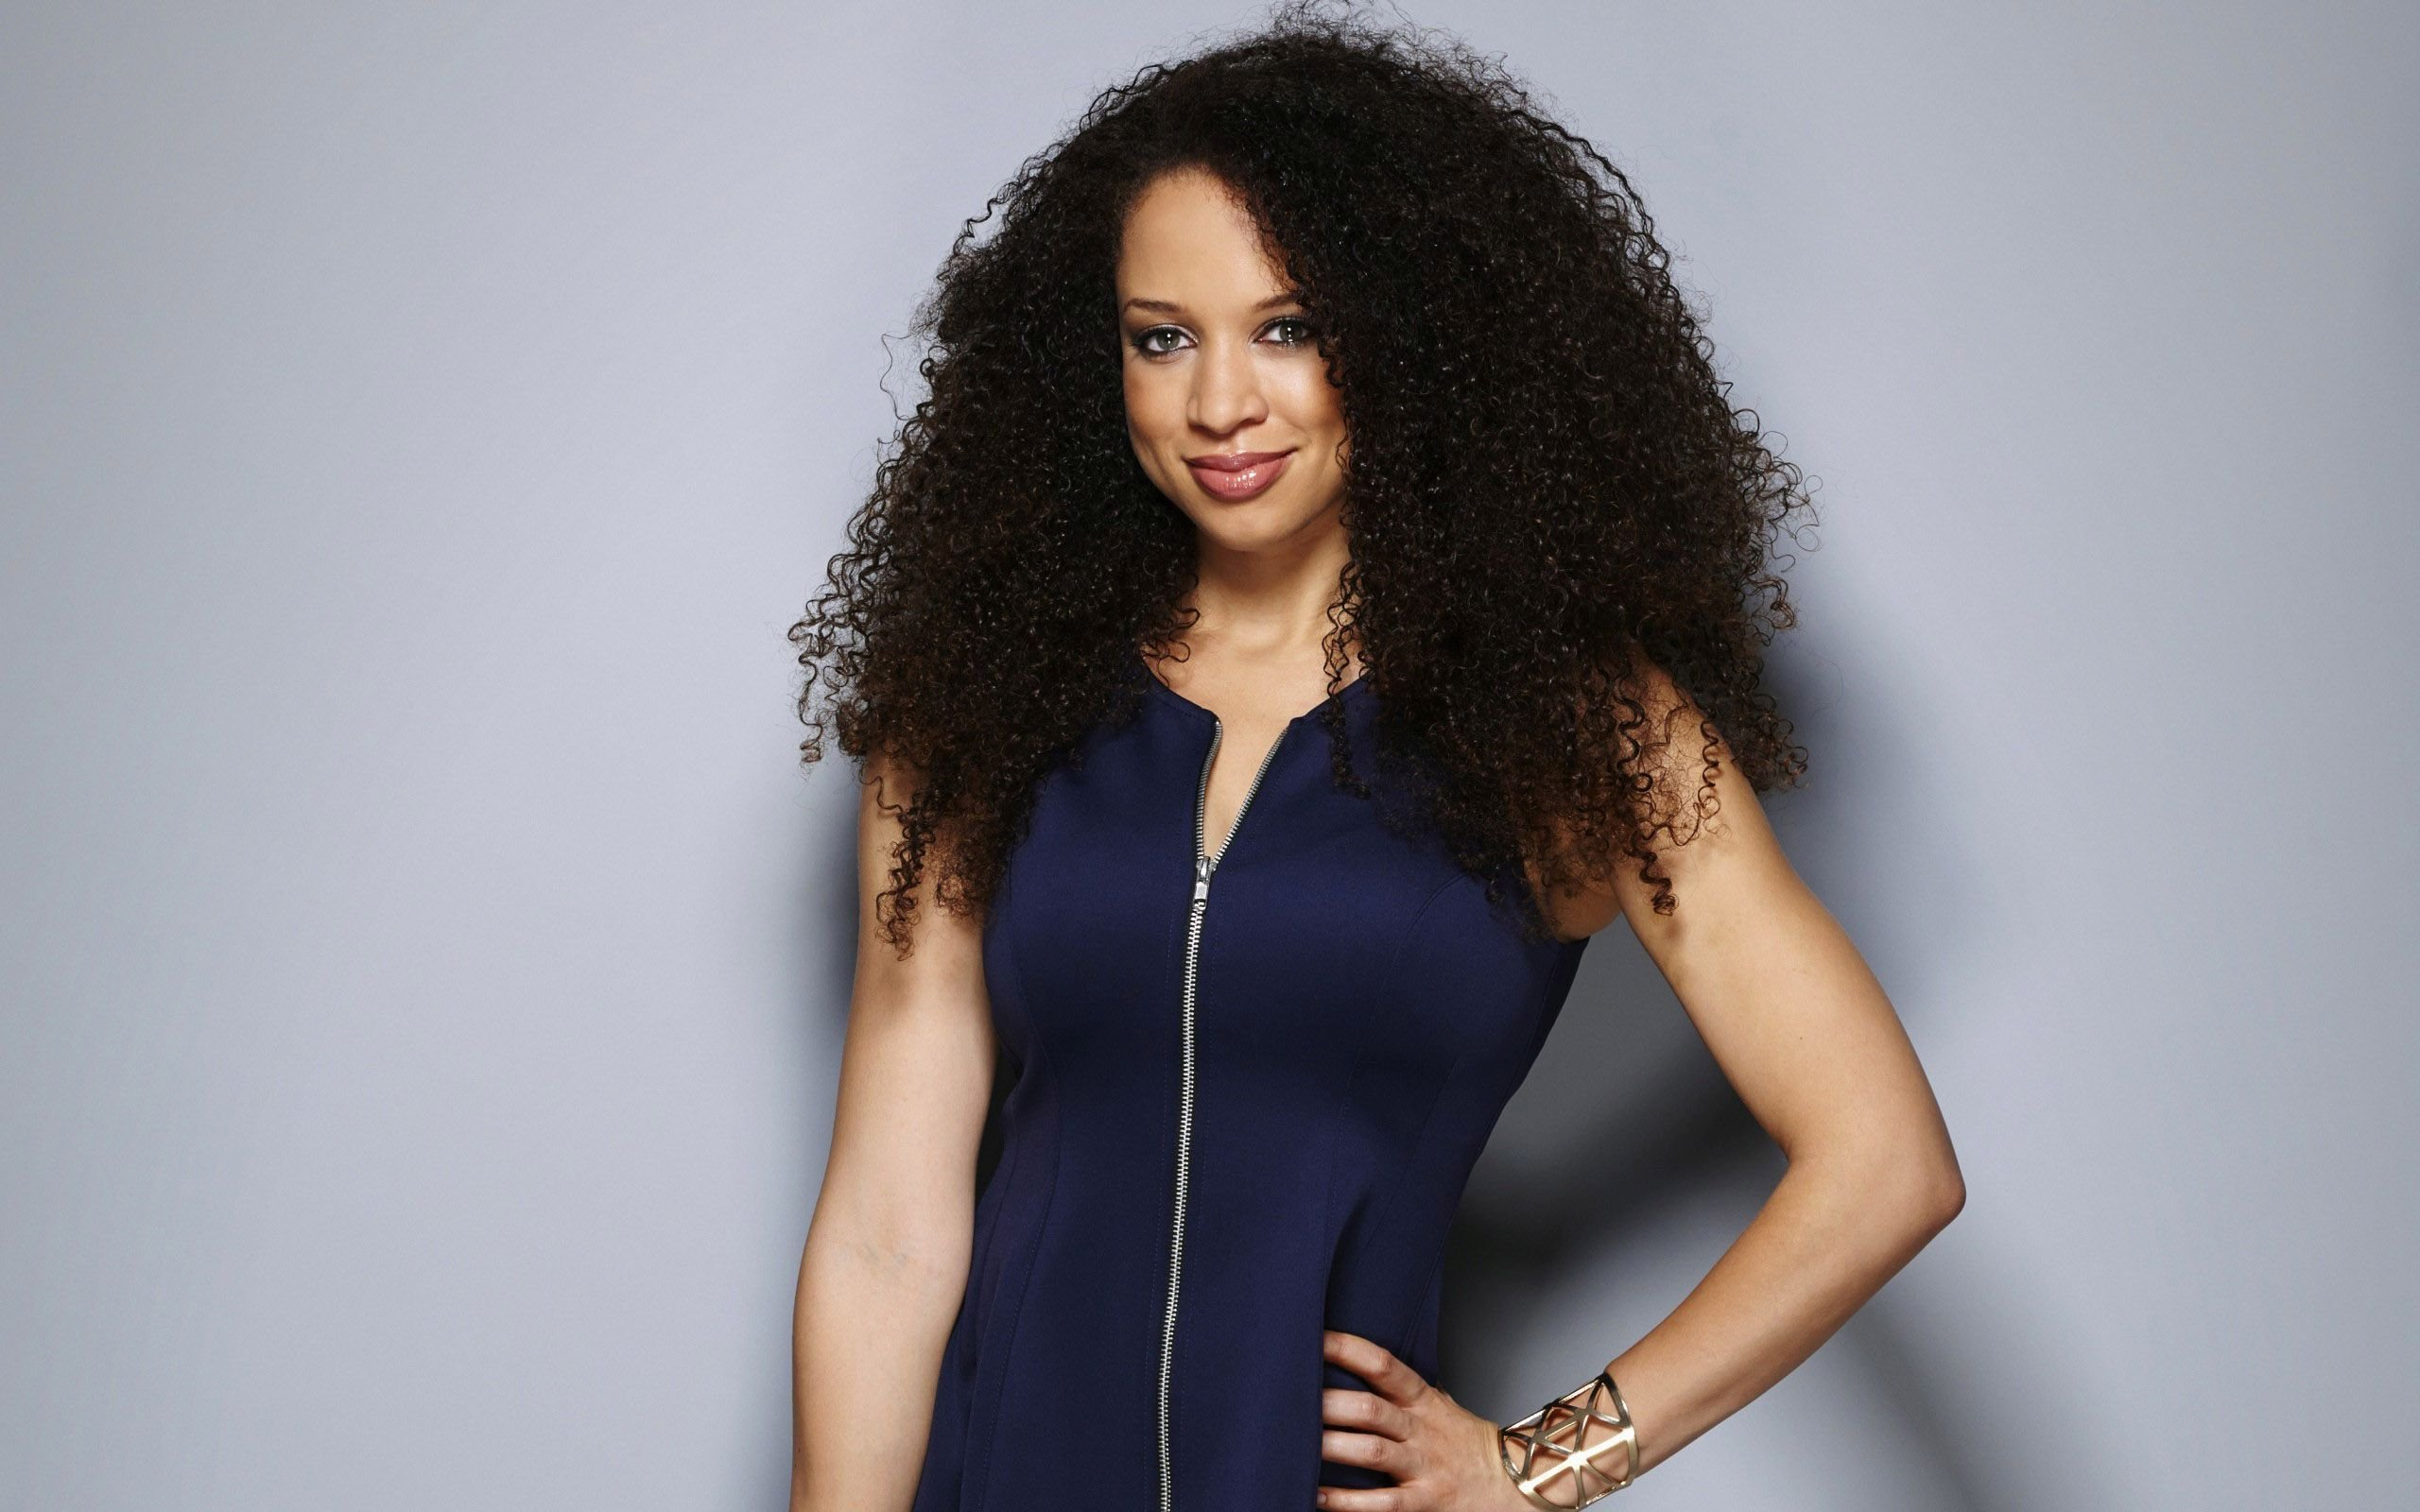 natalie gumede wallpaper background 60795